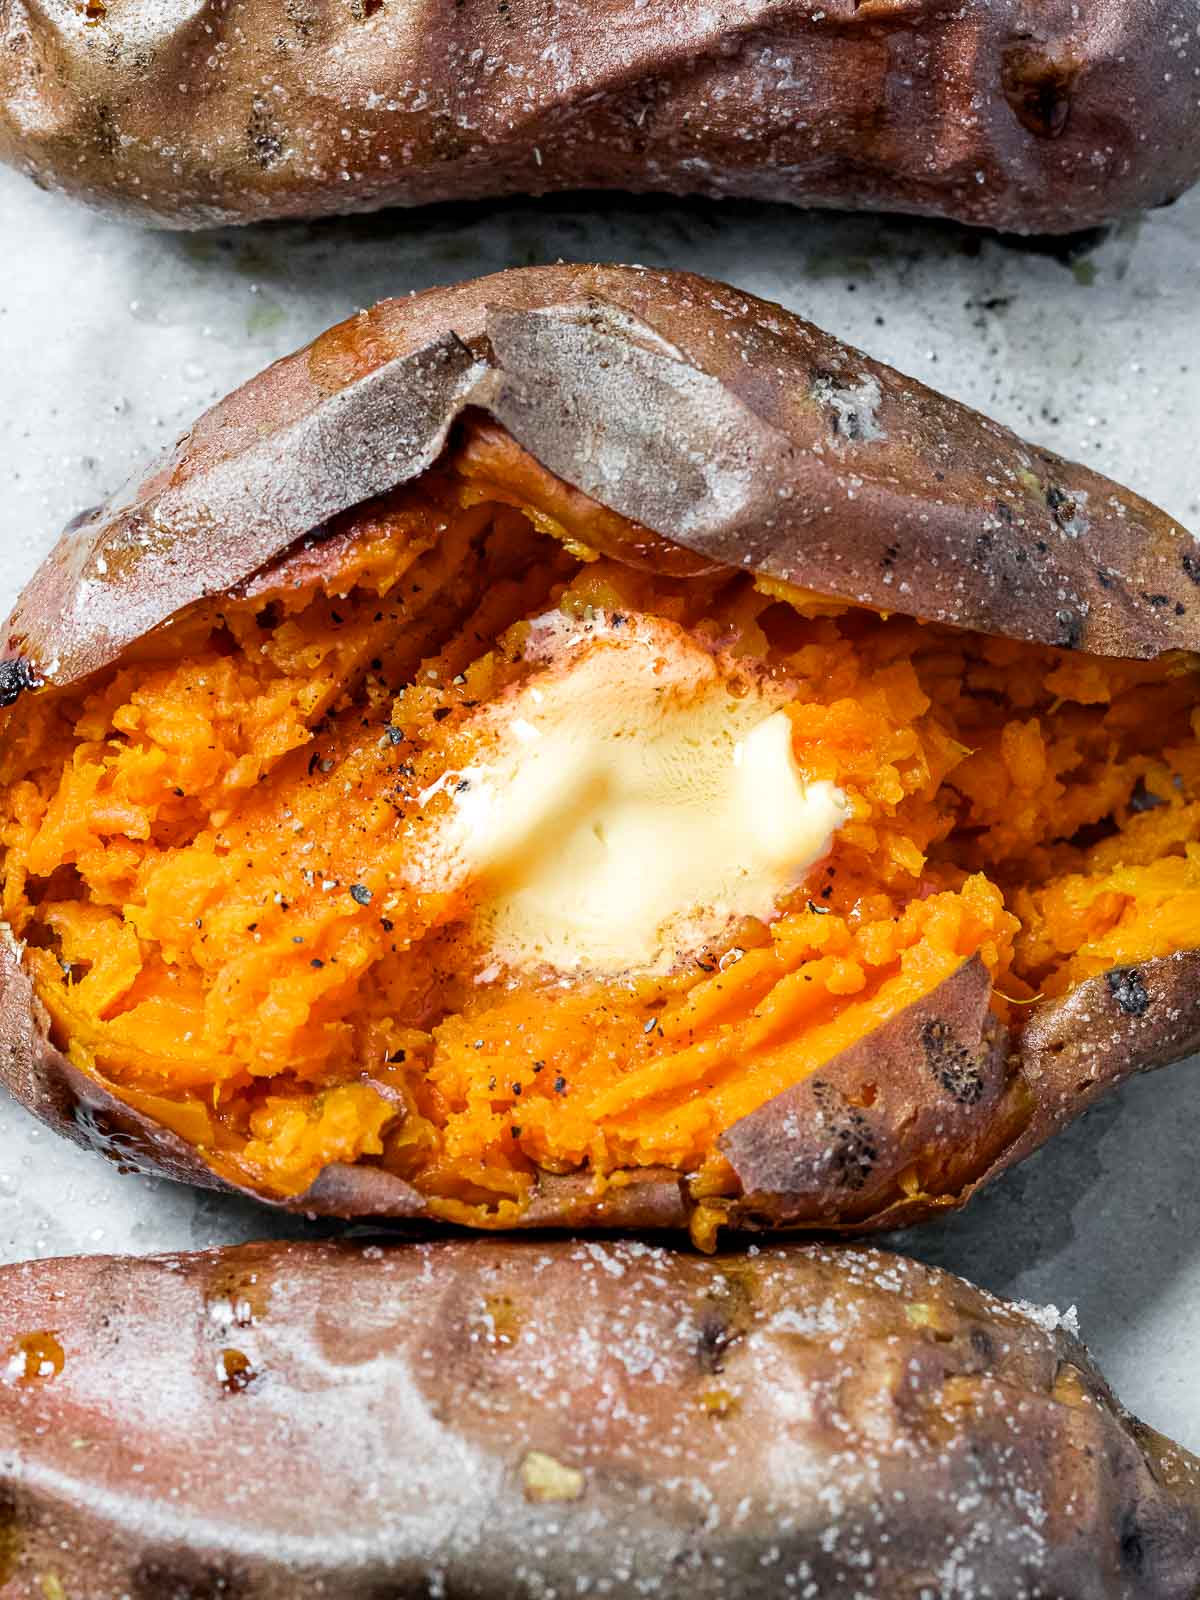 baked potato with crispy skin cut open with a pad of butter in the middle